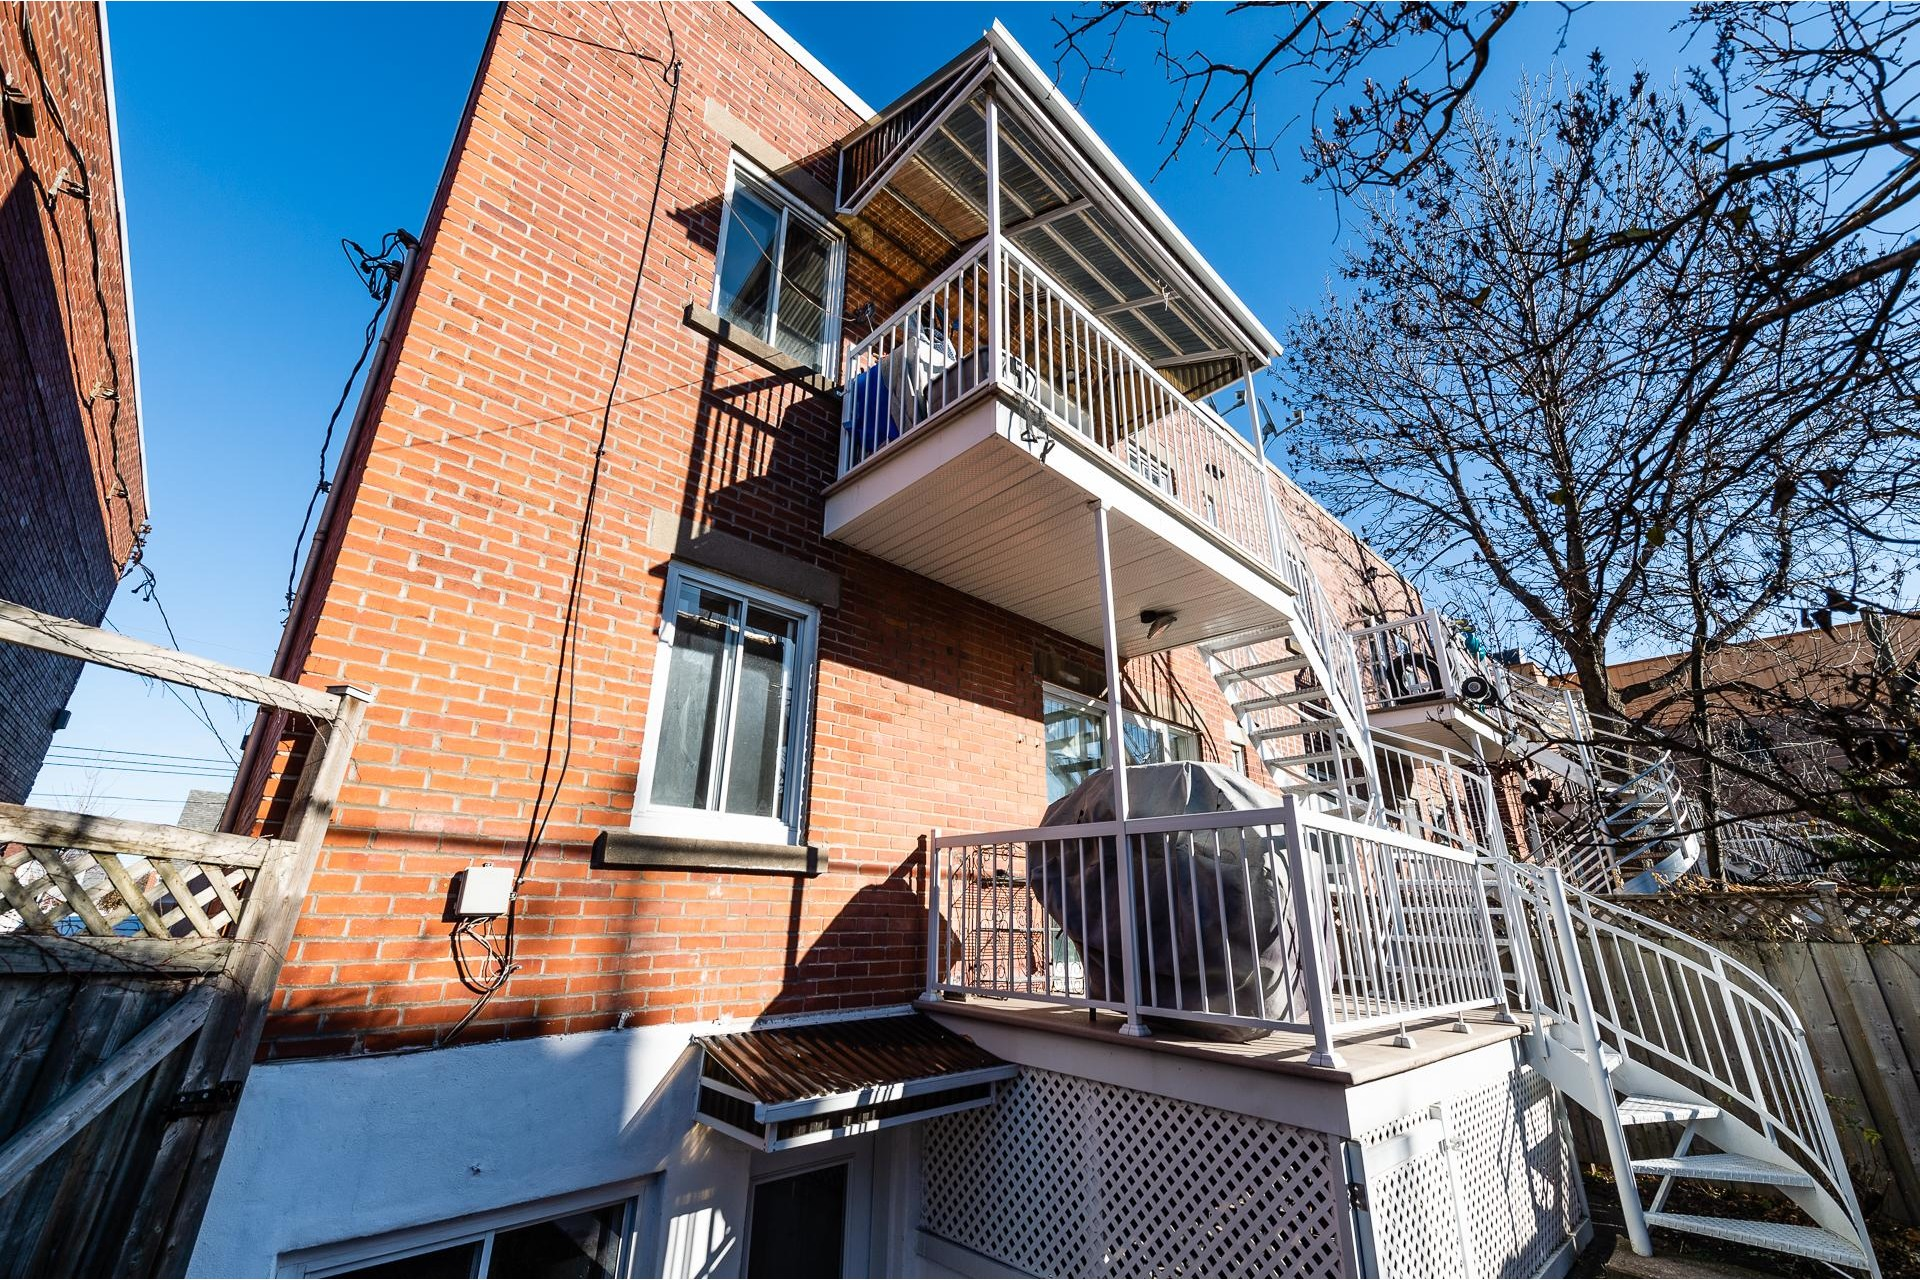 image 18 - Duplex For sale Villeray/Saint-Michel/Parc-Extension Montréal  - 10 rooms